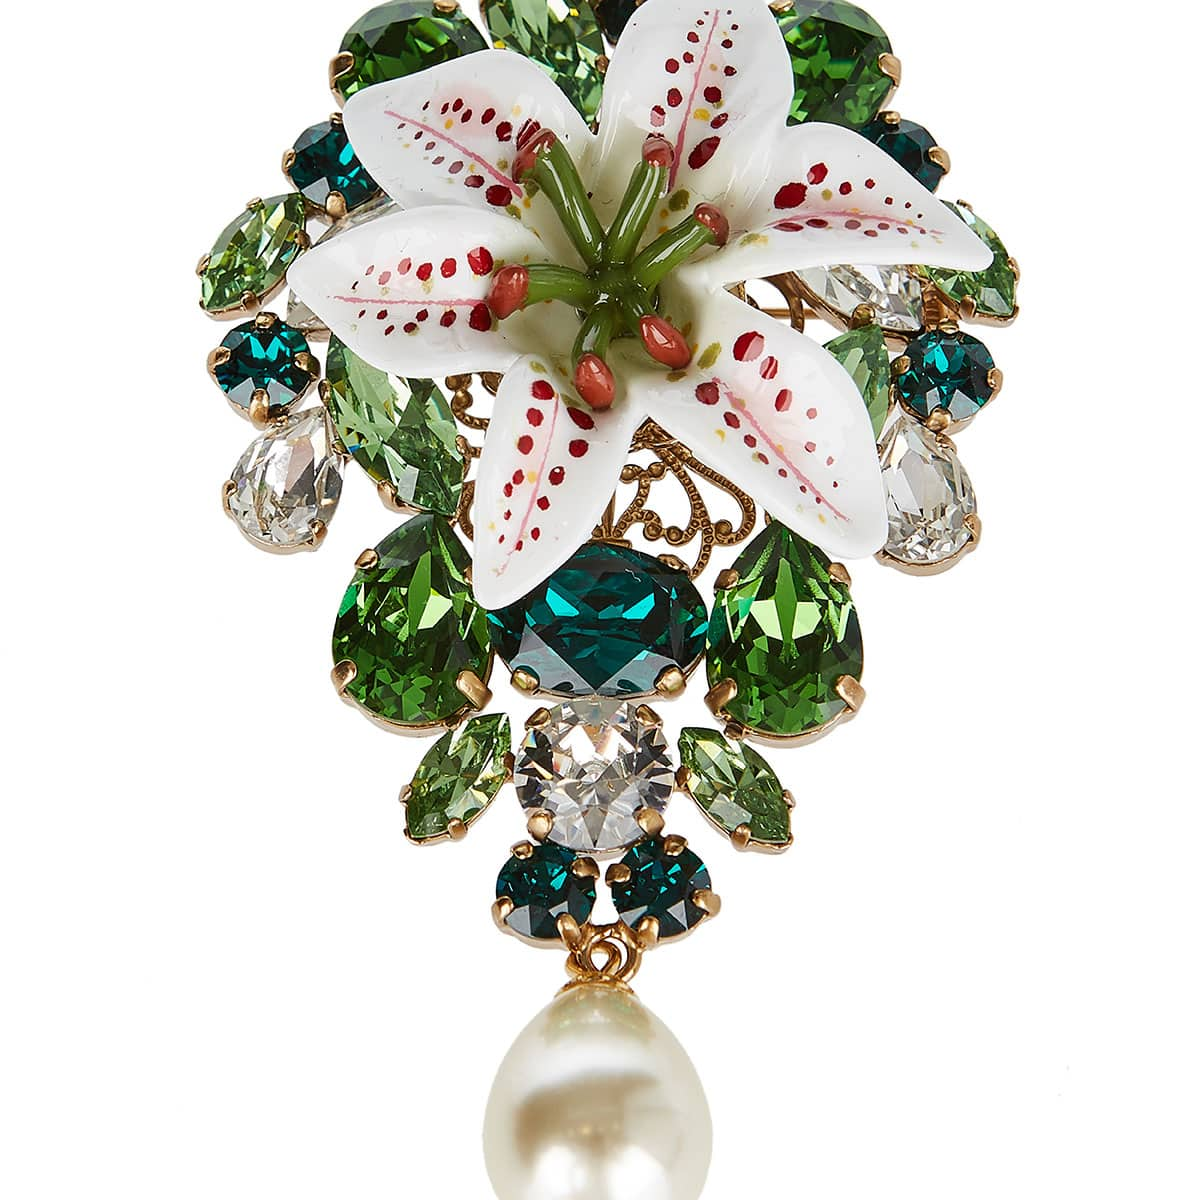 Crystal-embellished resin brooch